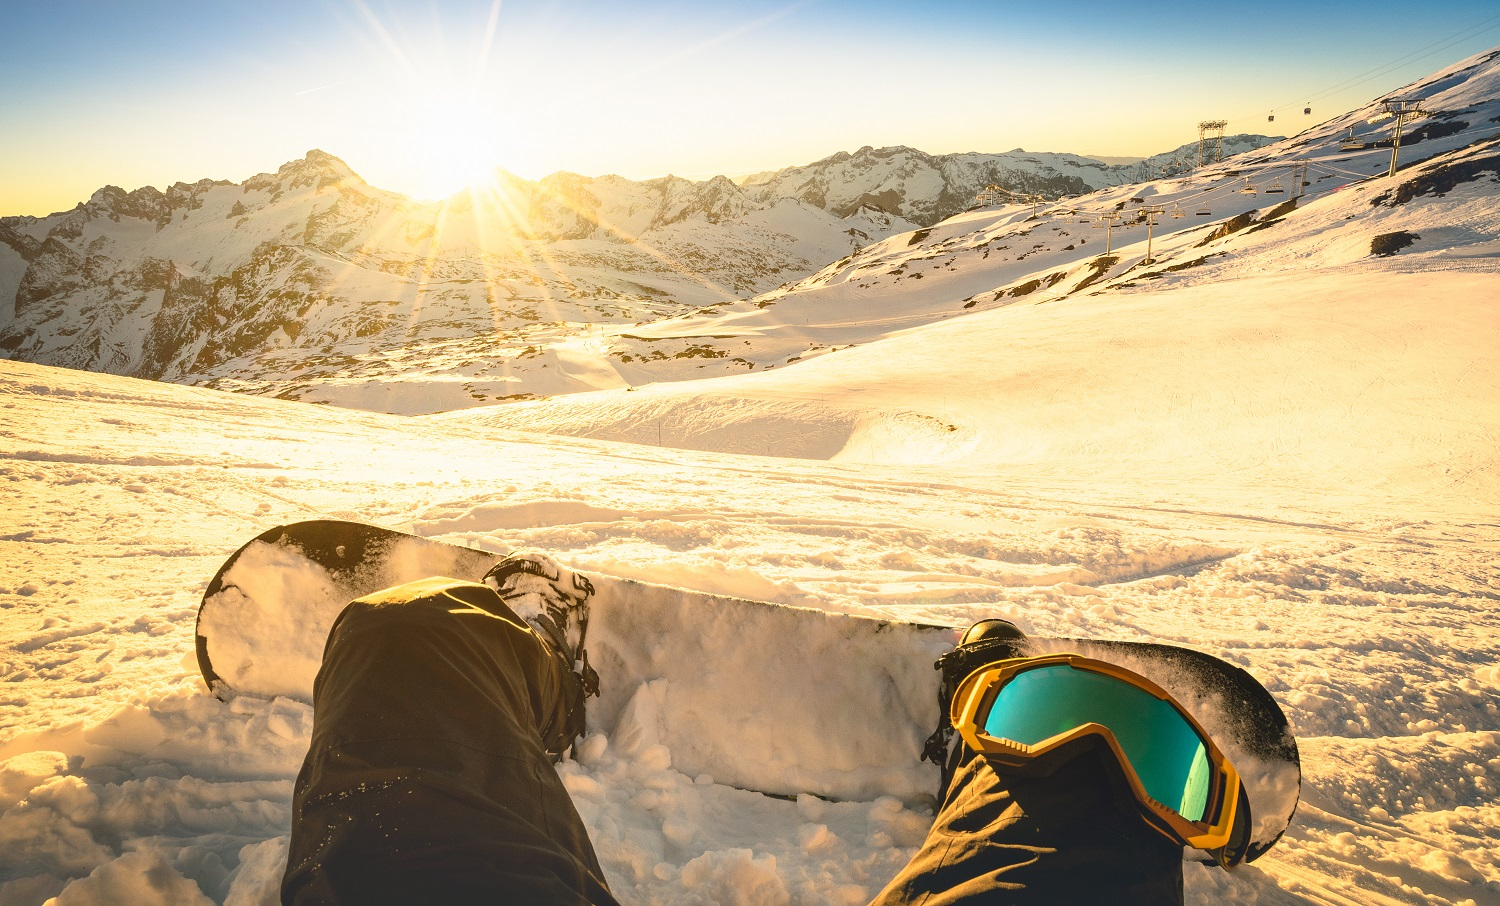 Snowboarder sitting on relax moment at sunset in public ski resort - Winter sport concept with person on top of the mountain ready to ride down